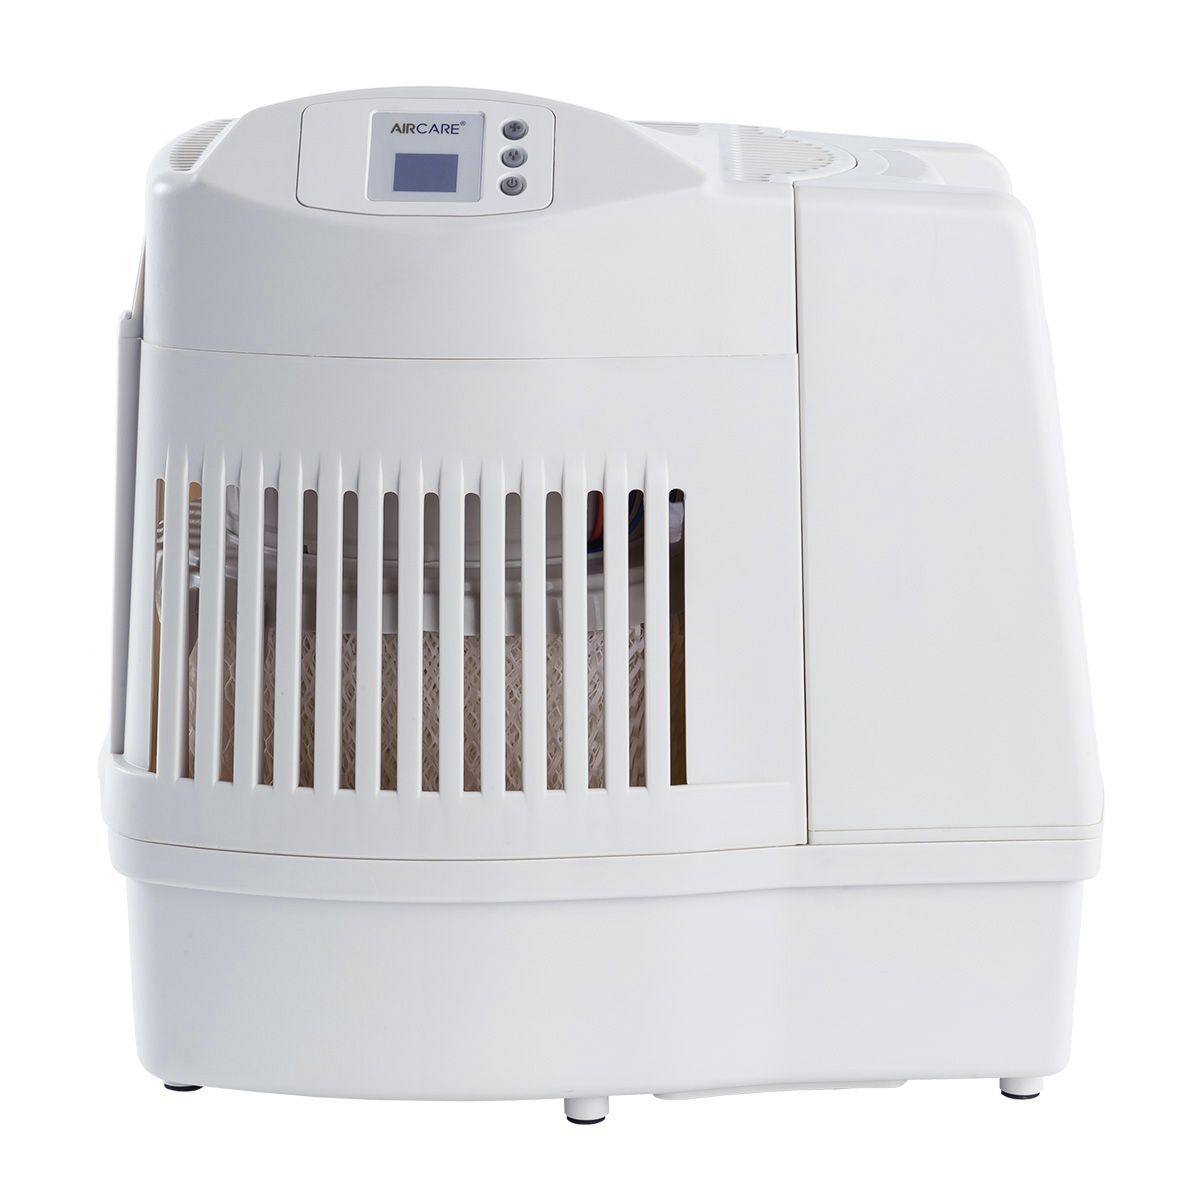 AIRCARE  Mini Console Humidifier for 2600 sq. ft. - White